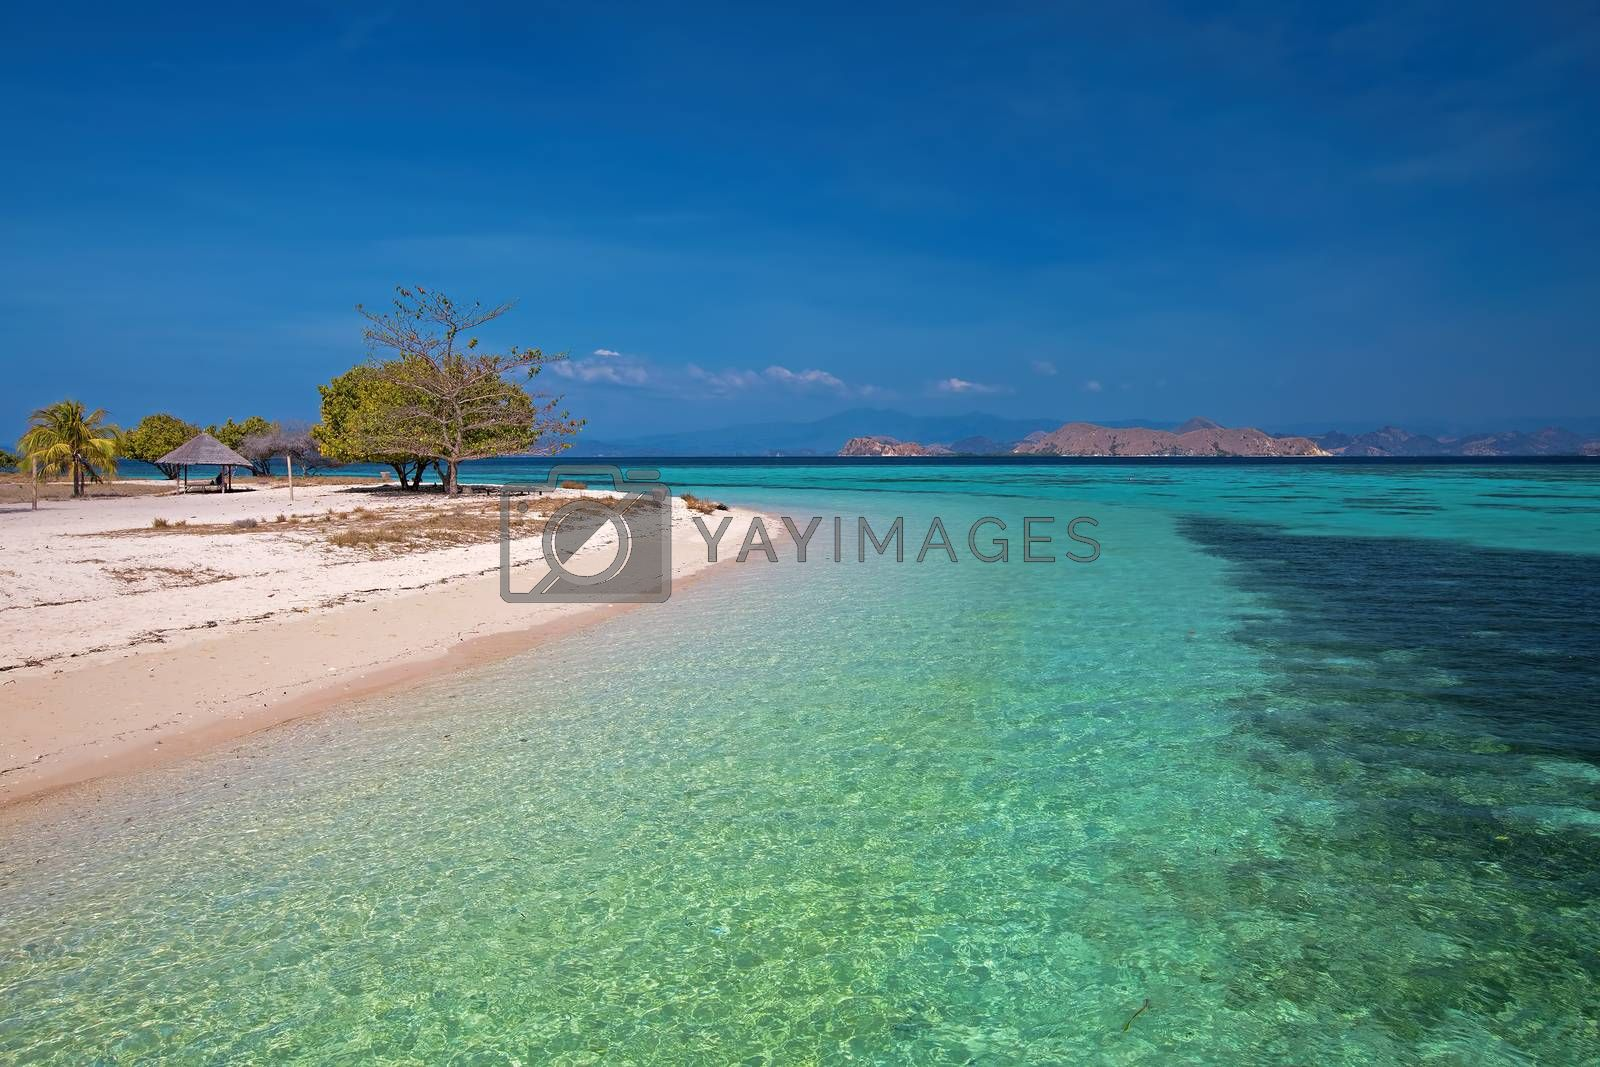 Royalty free image of Komodo Island by kjorgen